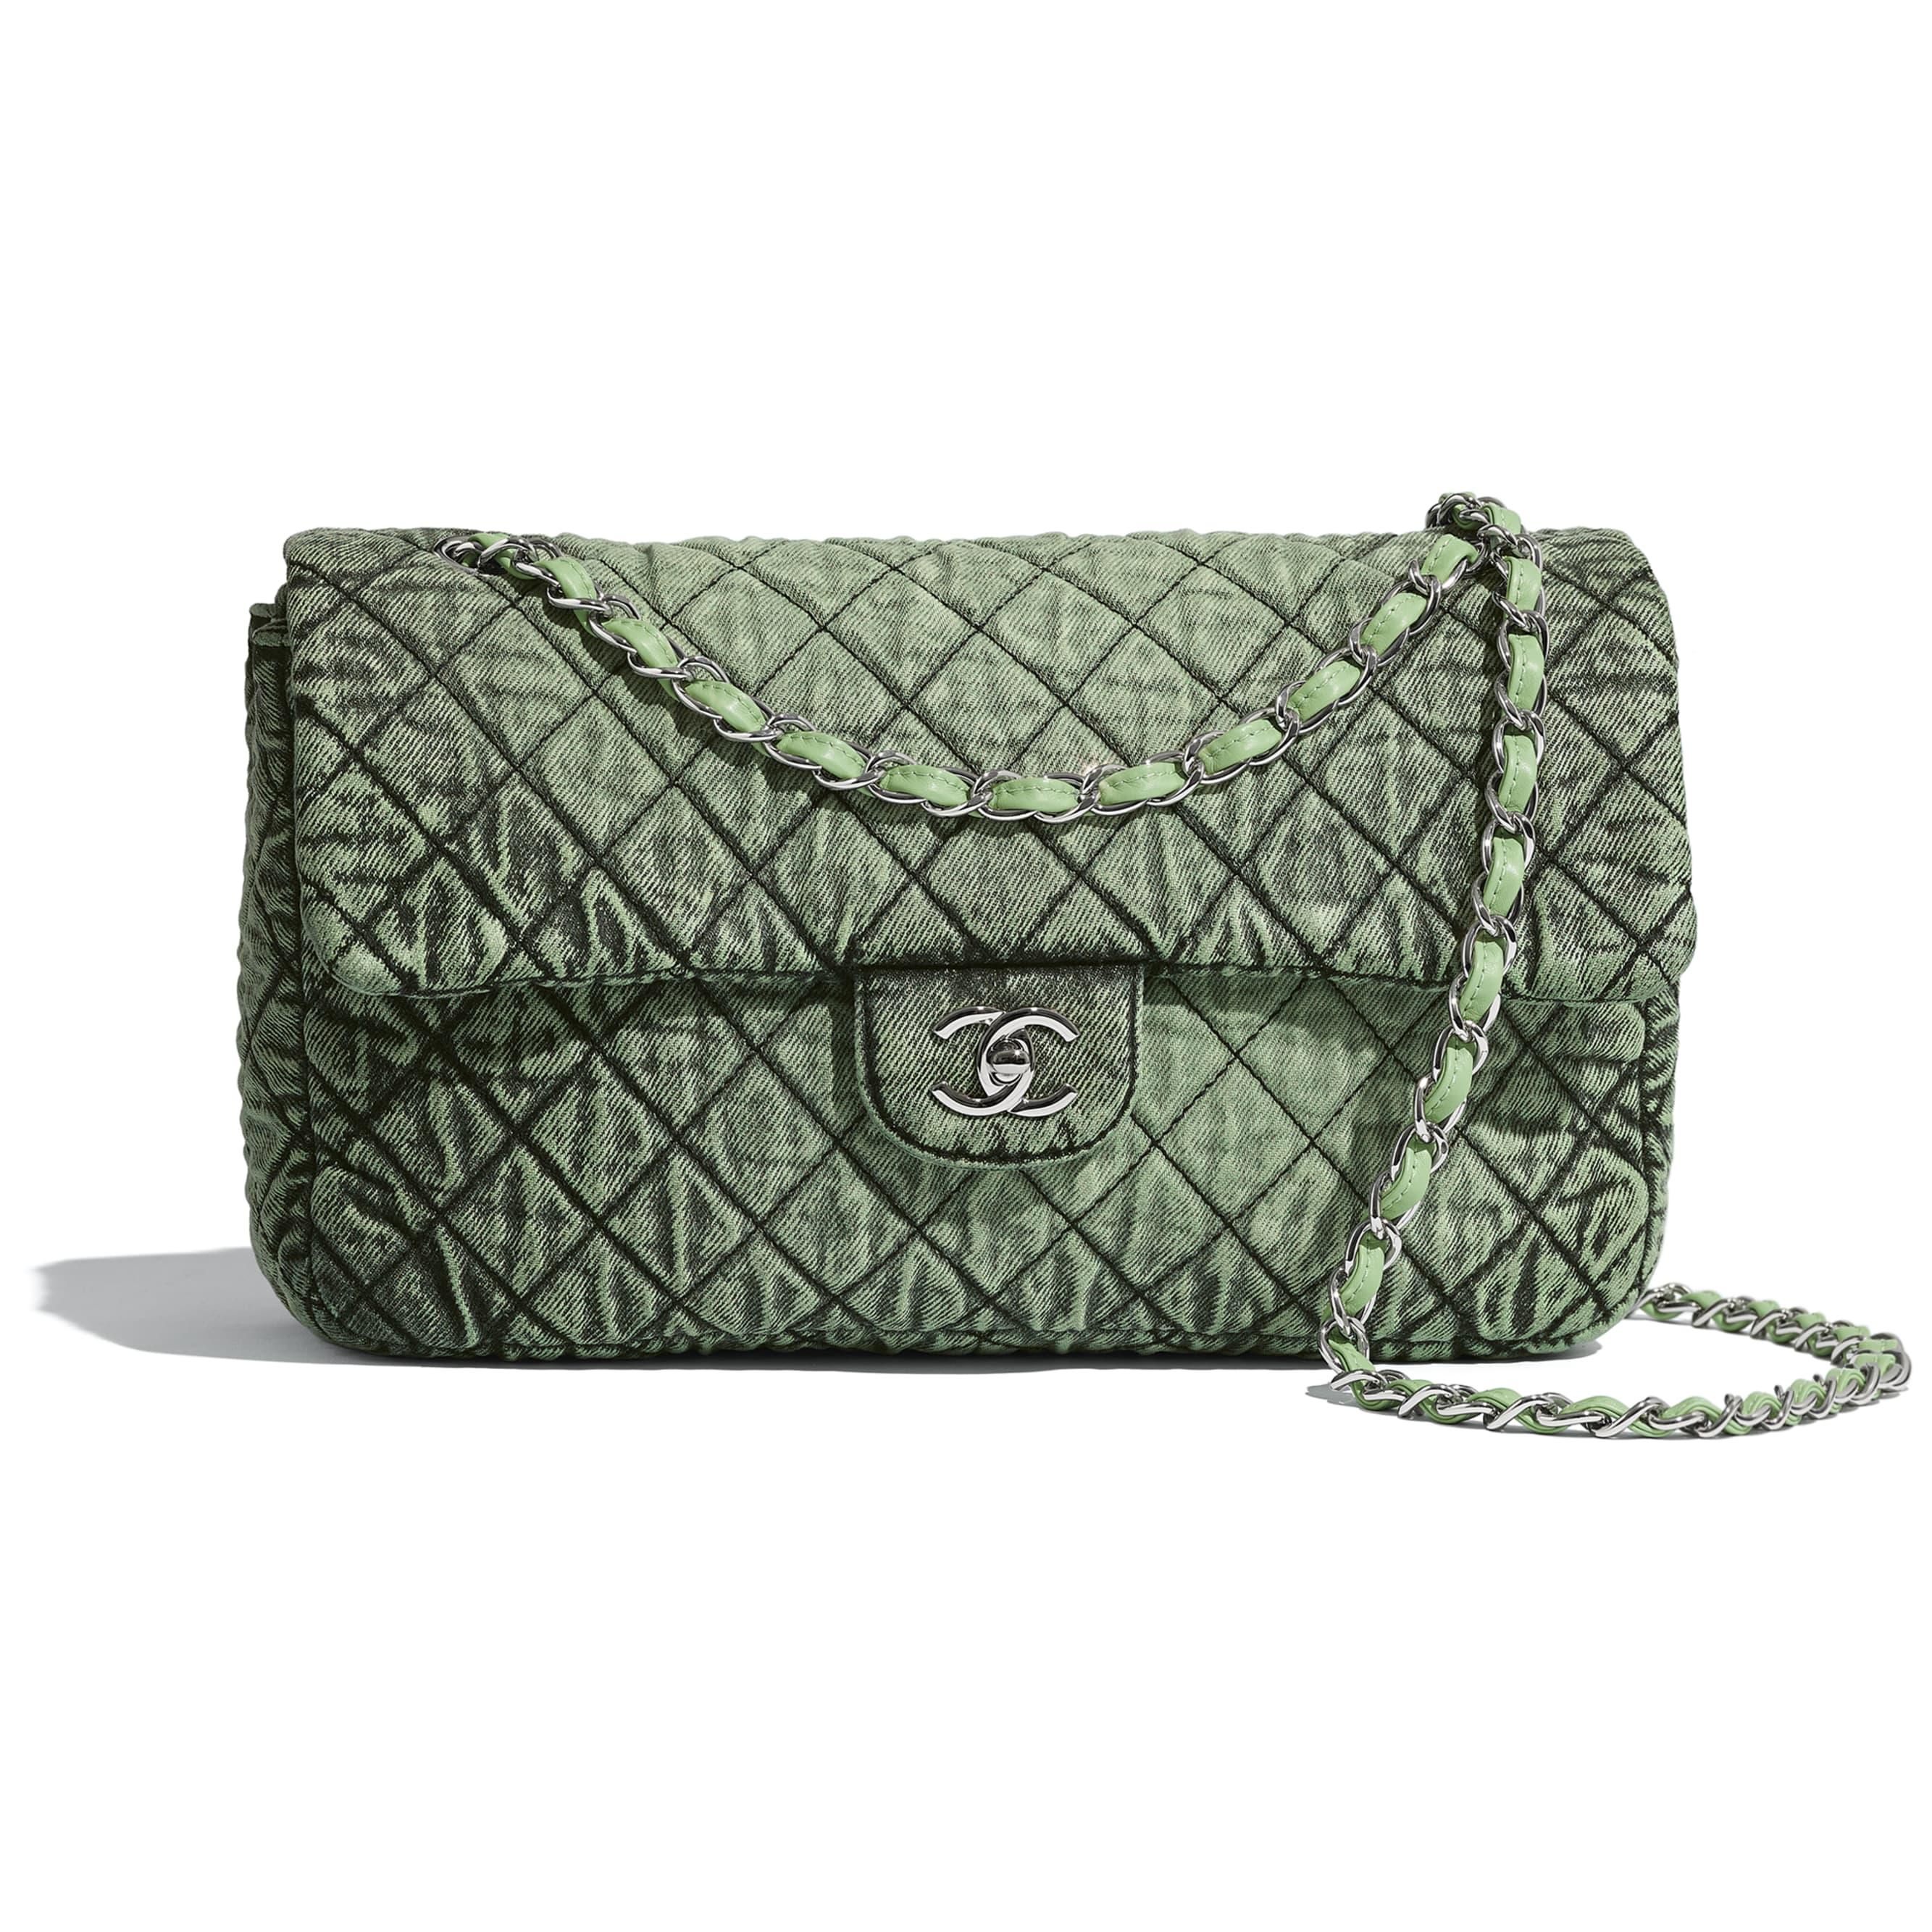 Flap Bag - Green & Black - Denim & Silver-Tone Metal - CHANEL - Default view - see standard sized version